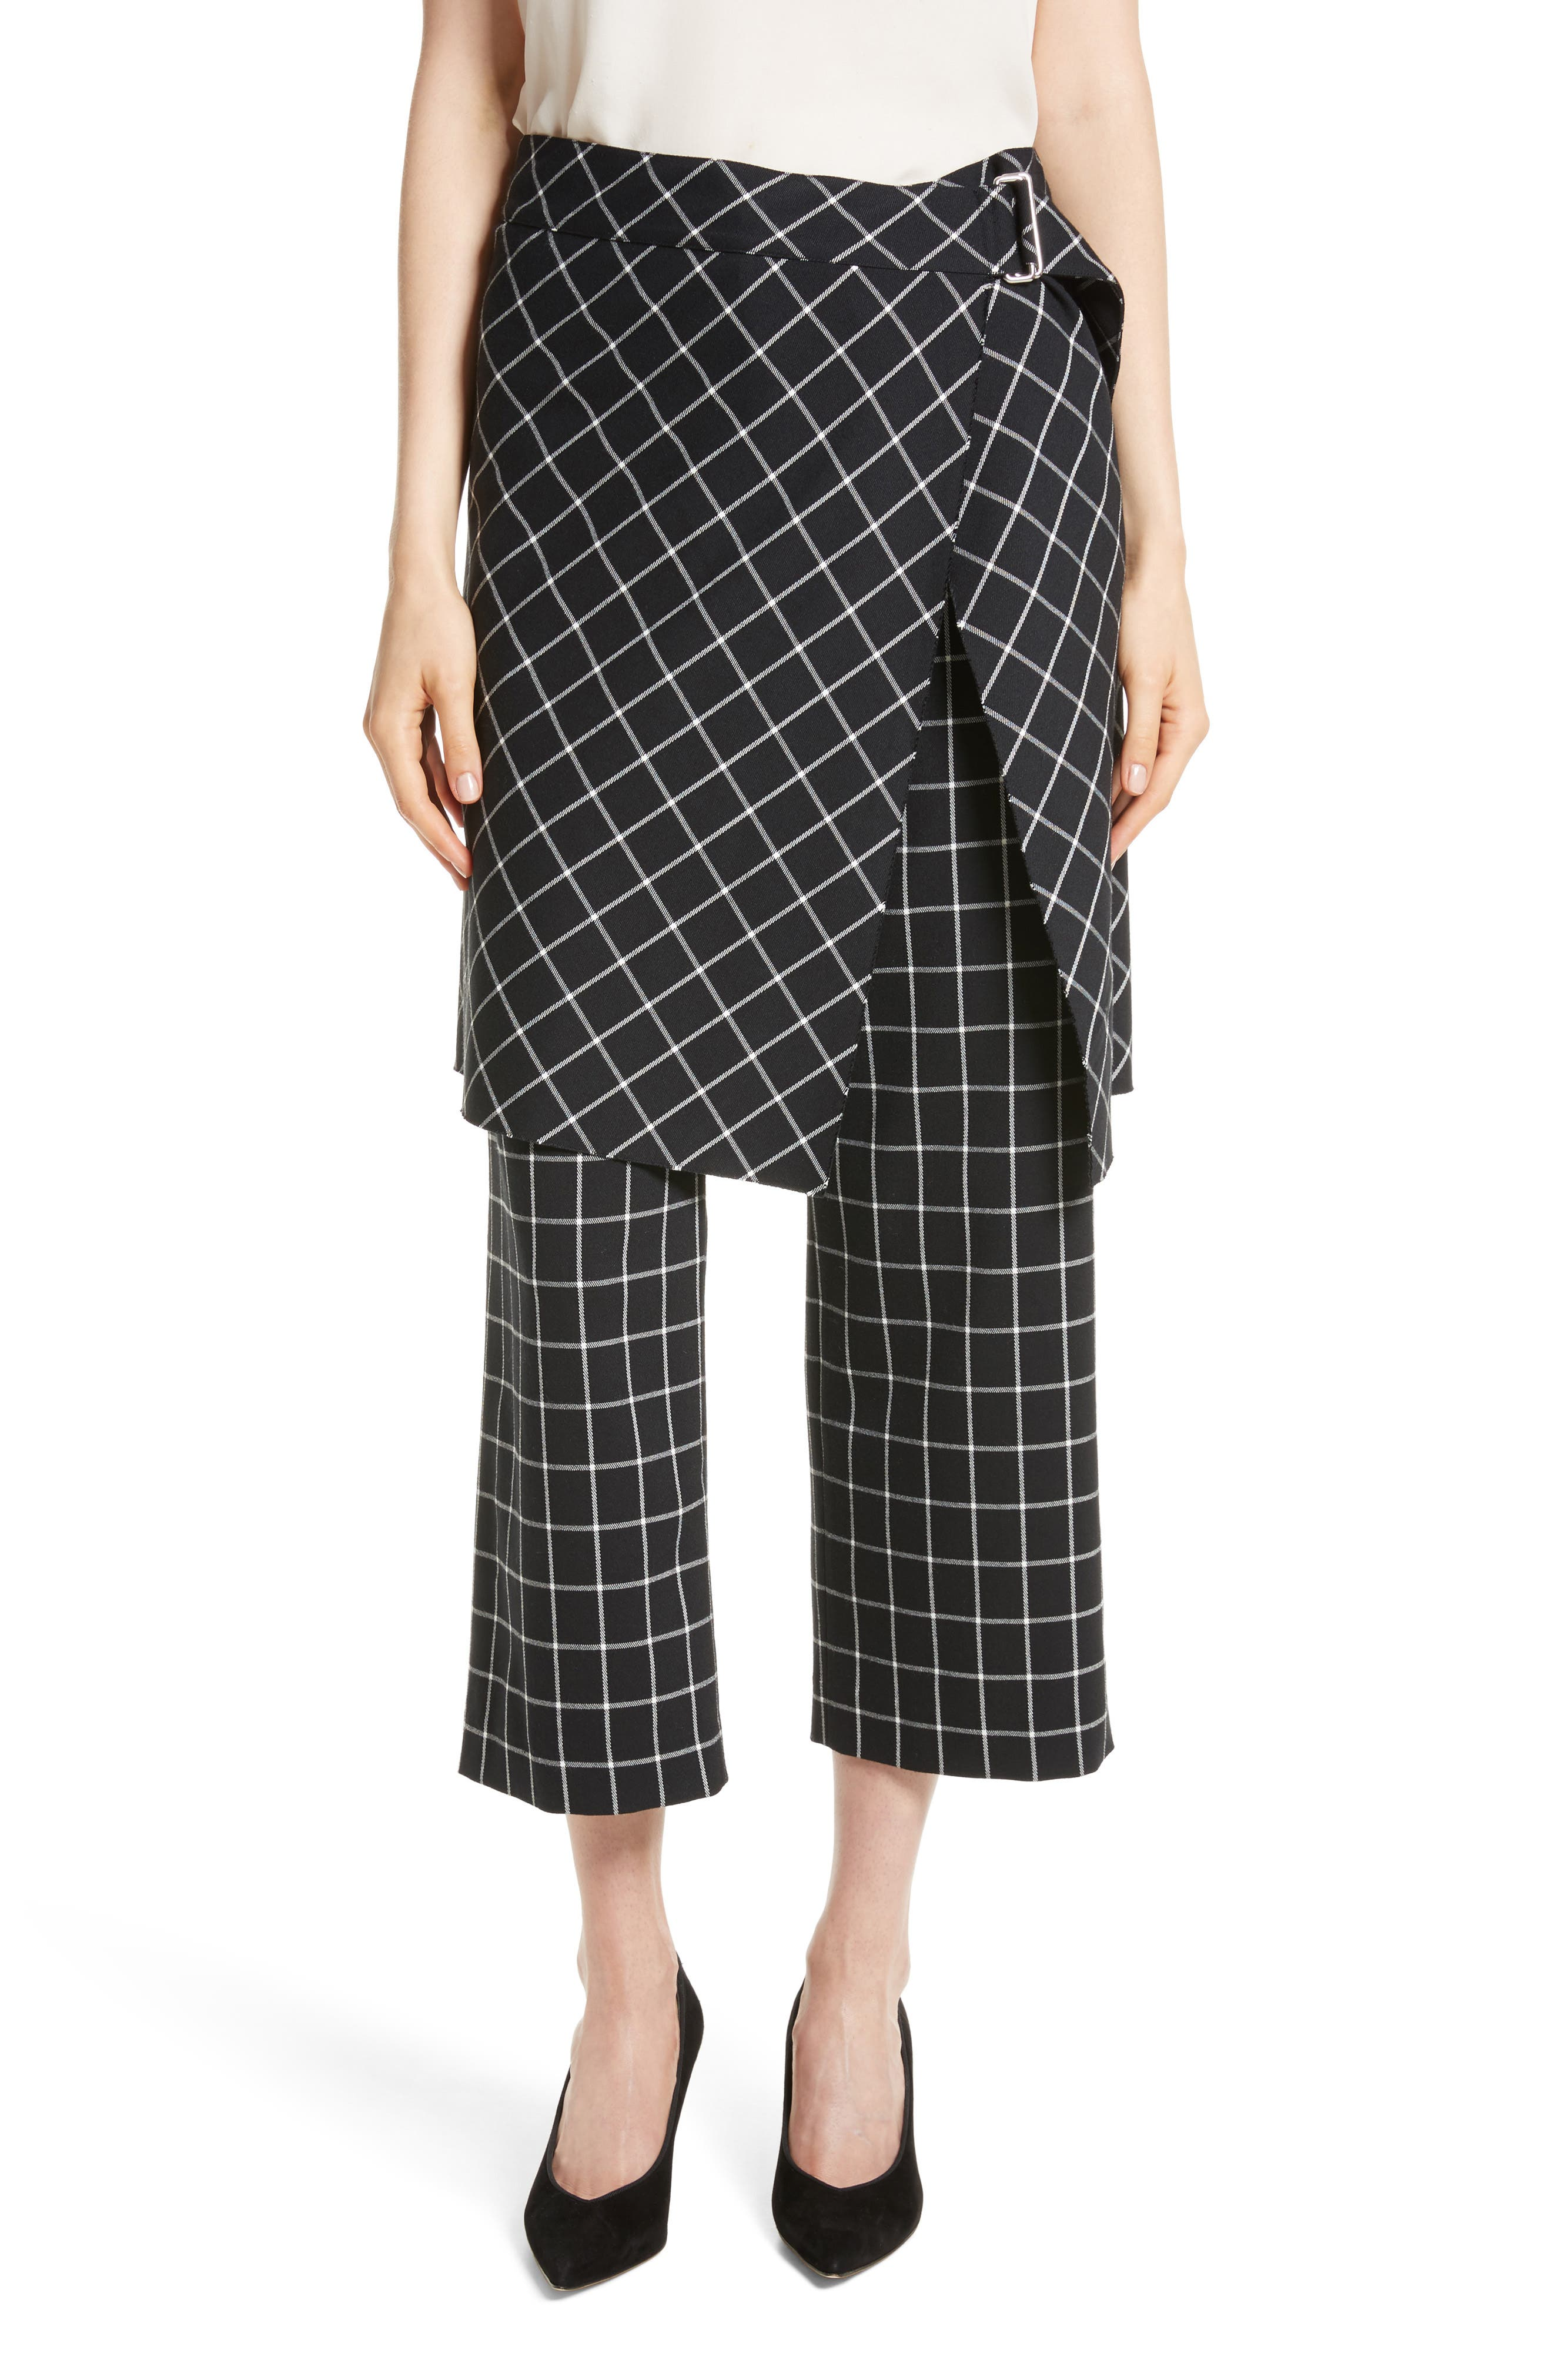 Main Image - Robert Rodriguez Grid Print Skirted Pants